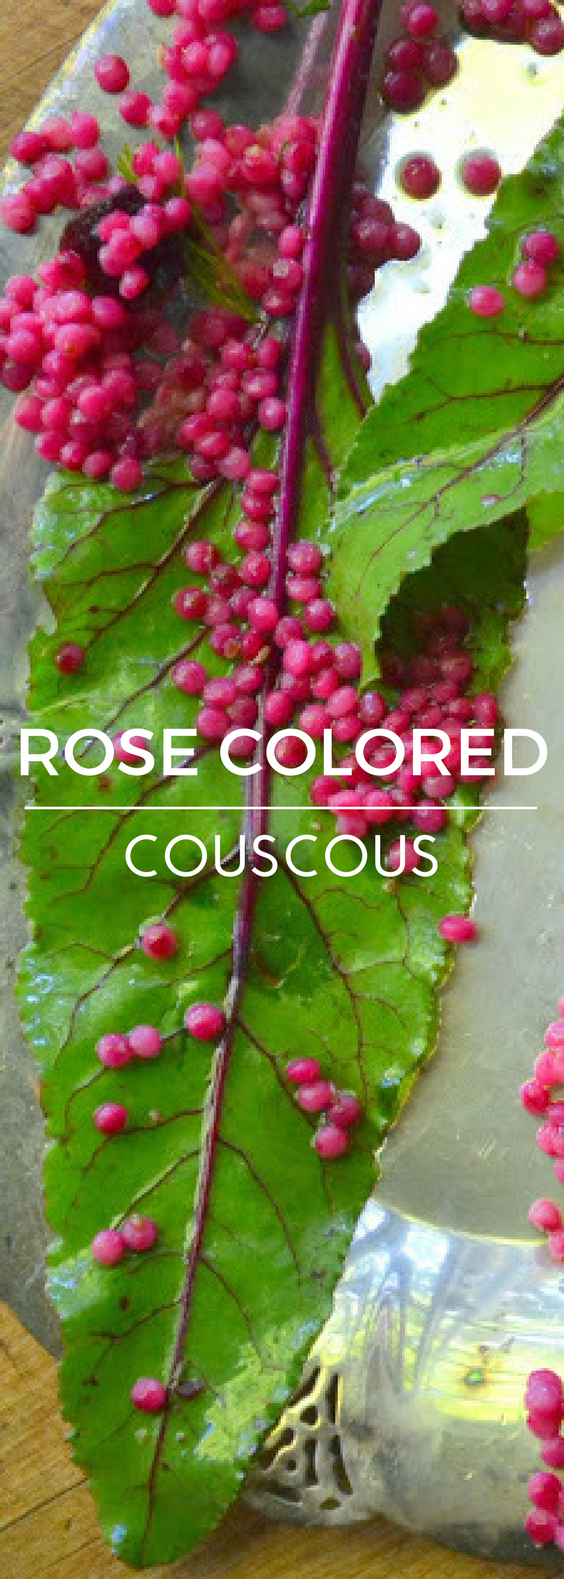 Rose Colored Couscous, or Israeli Couscous with Beets and Walnuts is a uniquely beautiful and healthy pasta salad ~ the grains of couscous are stained a gorgeous magenta pink and it's a show stopper!